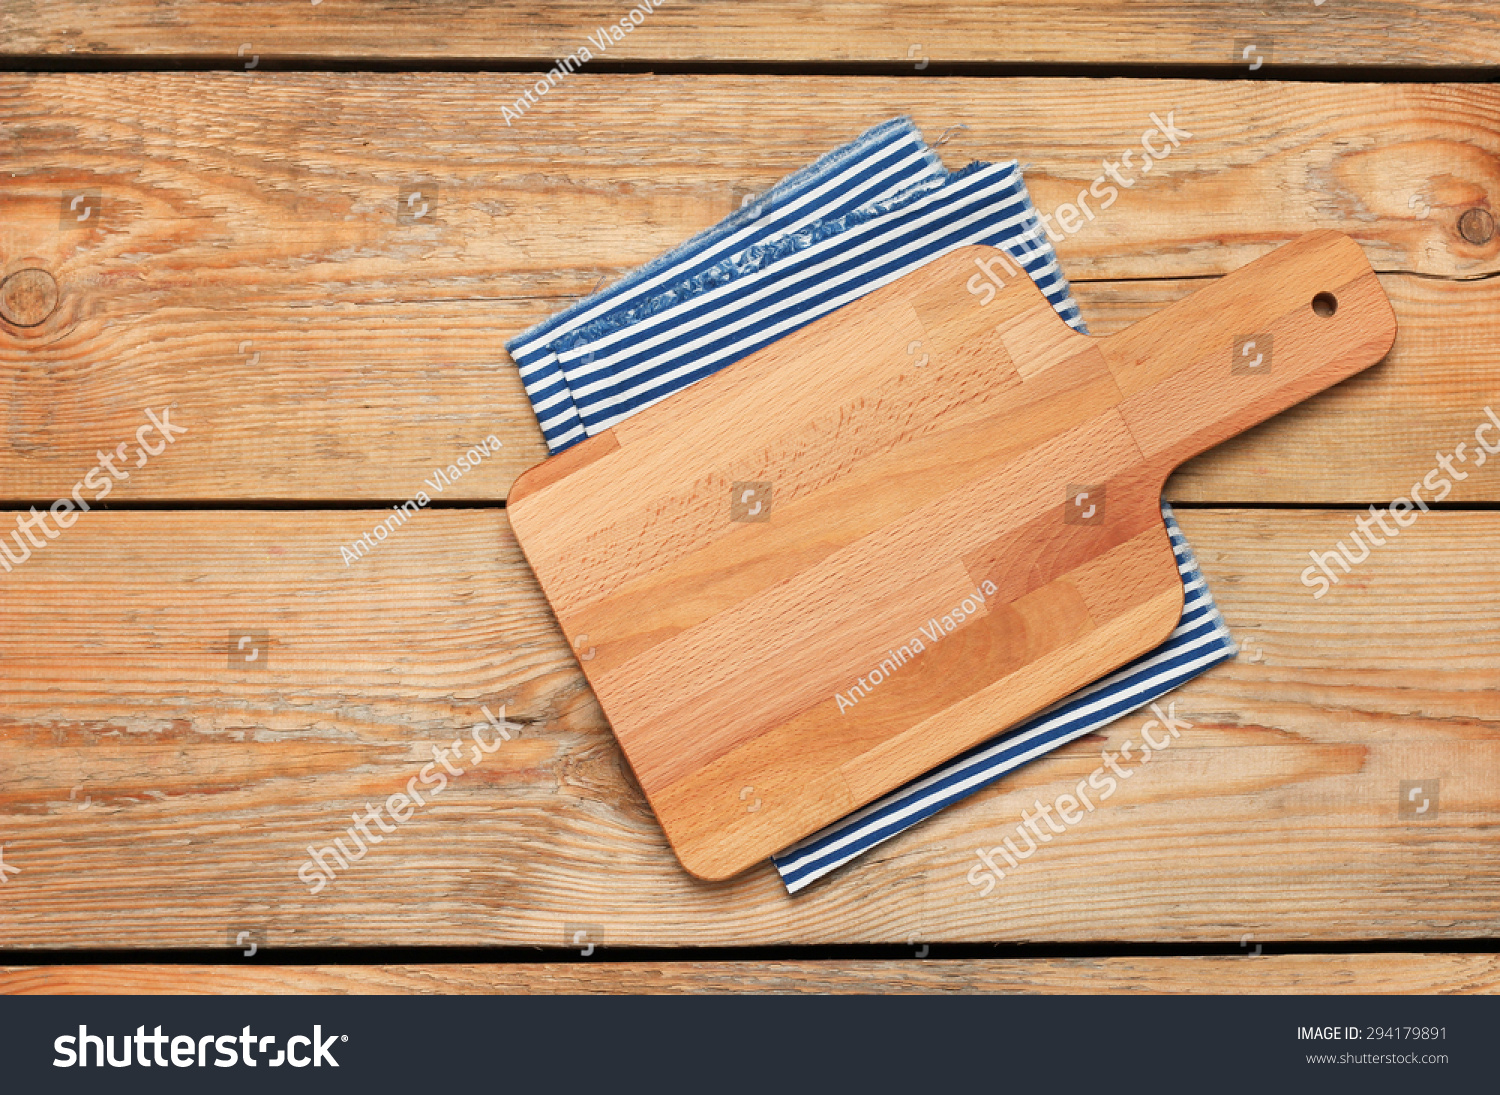 stock photo still life food and drink concept kitchen cooking utensils cutting board napkin on a wooden 294179891